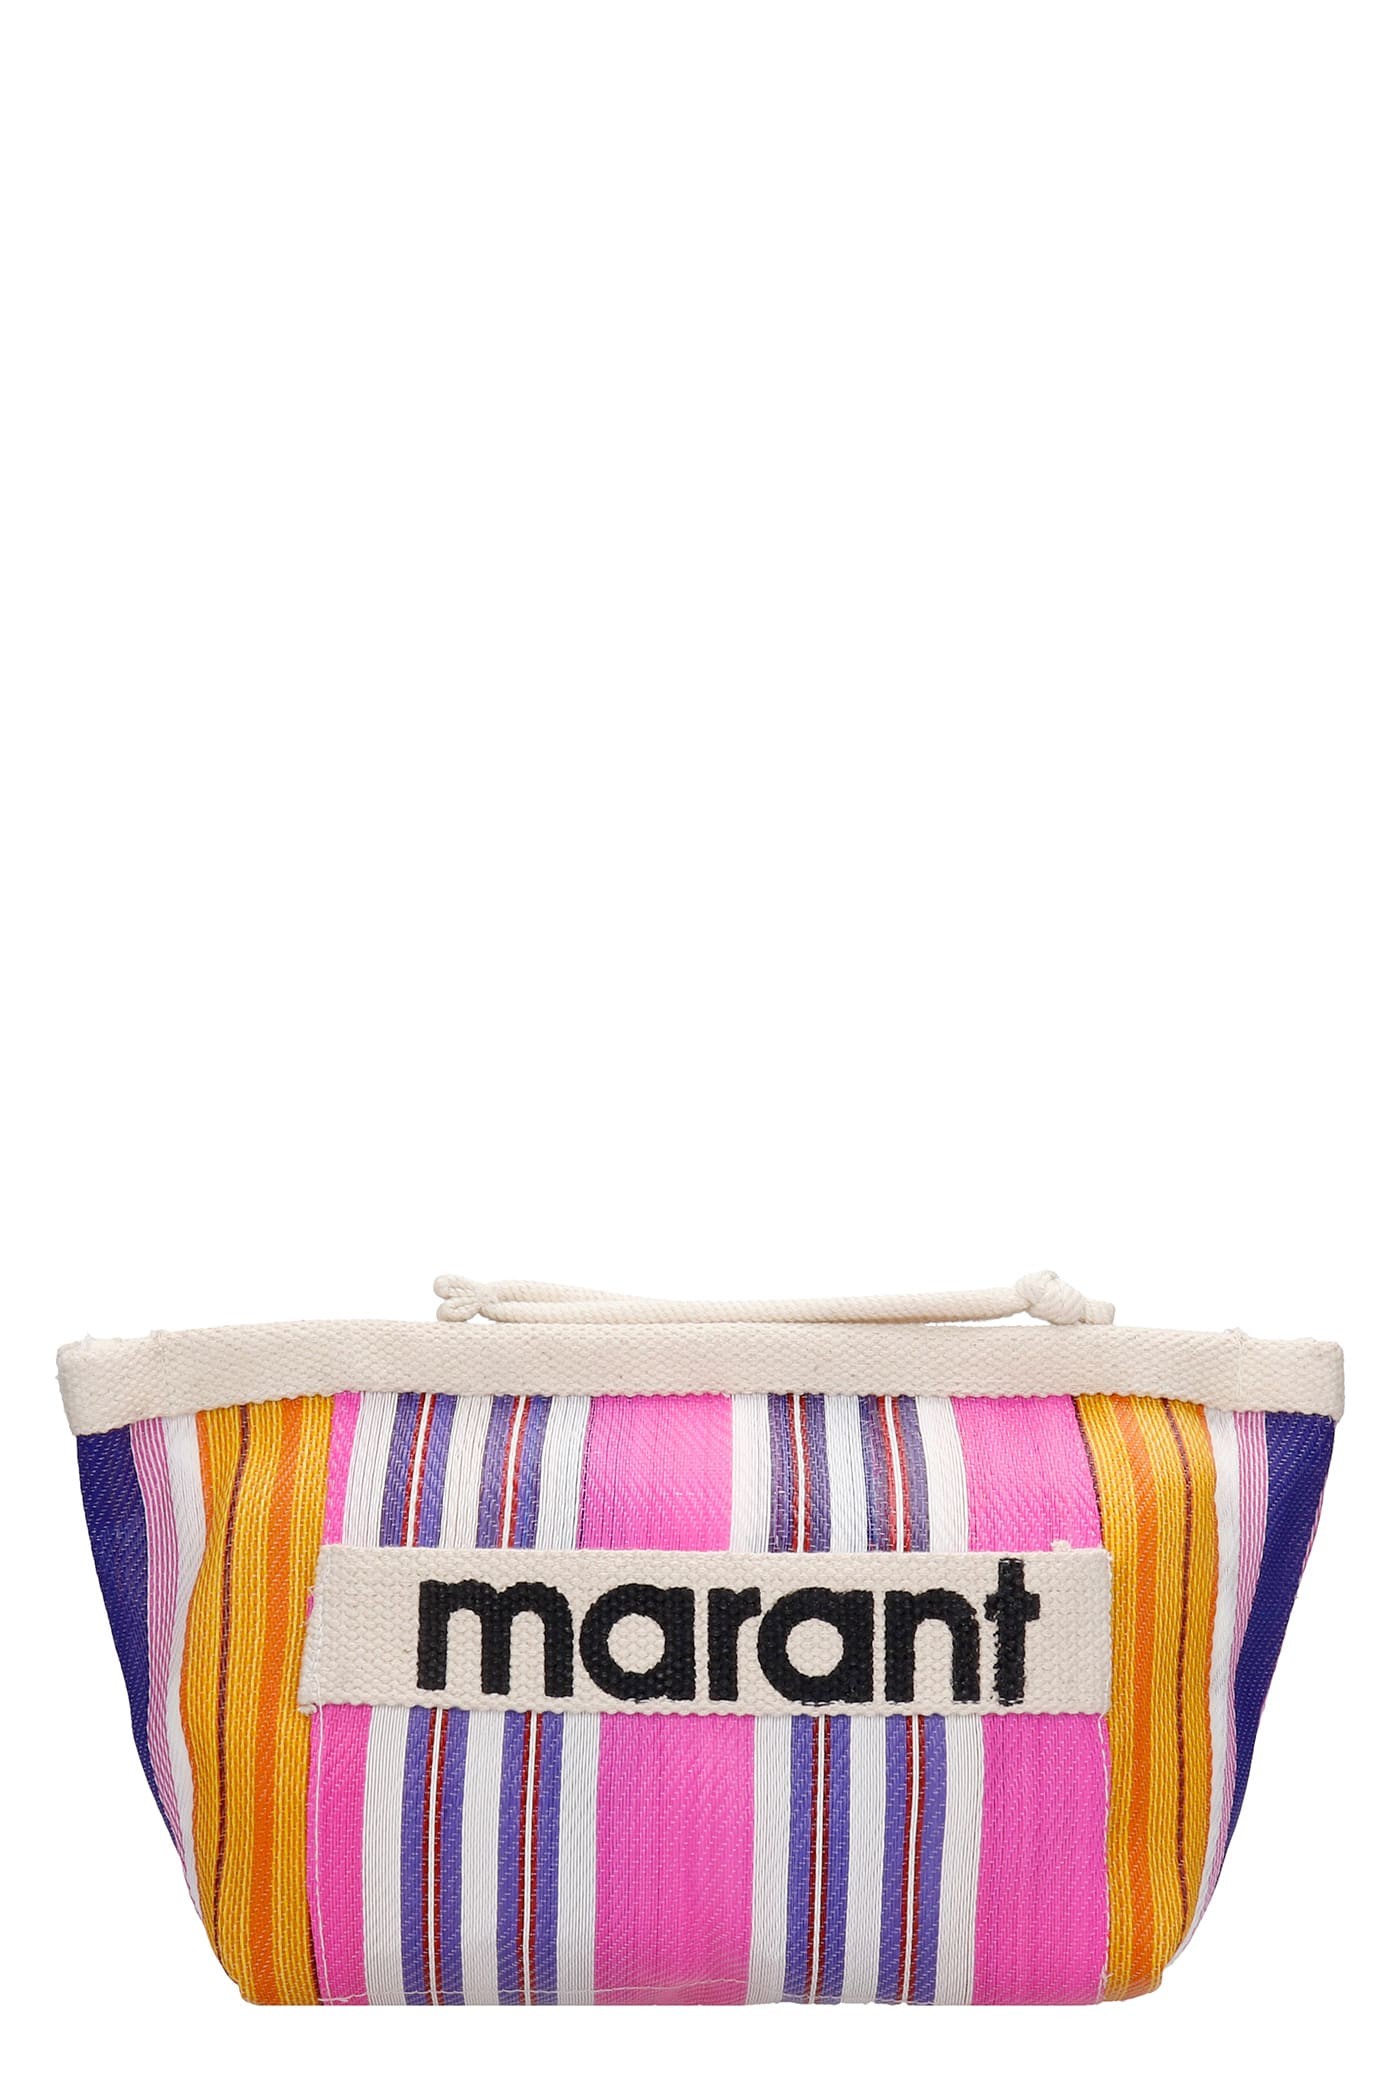 Isabel Marant Powder Hand Bag In Fuxia Canvas